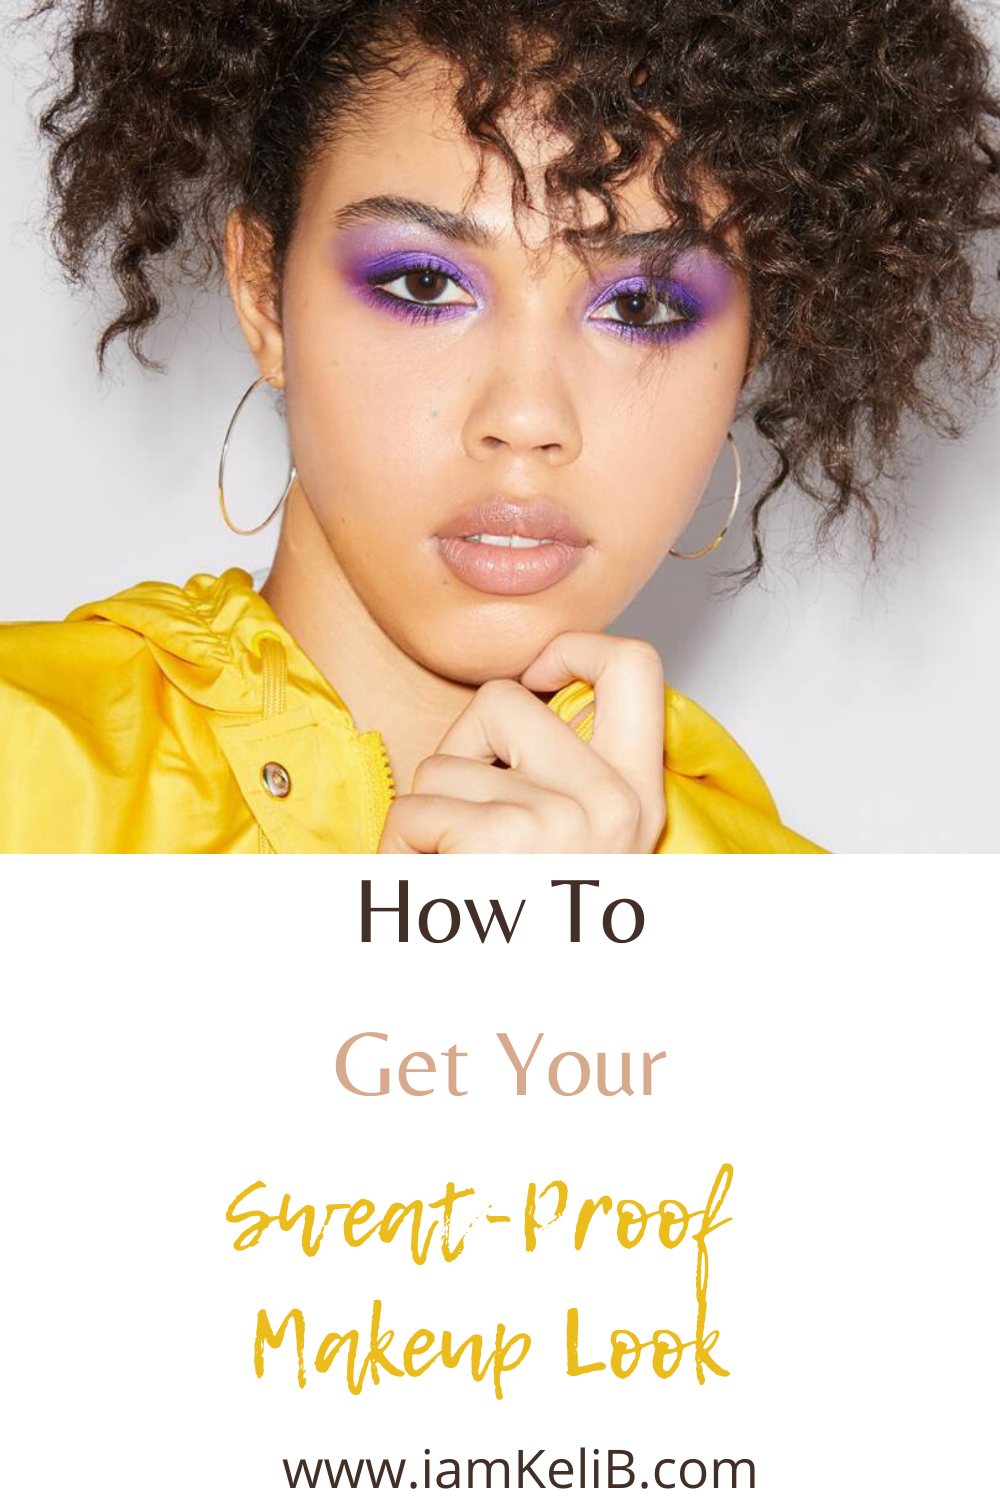 Sweat Proof Makeup Look in 2020 Sweat proof makeup